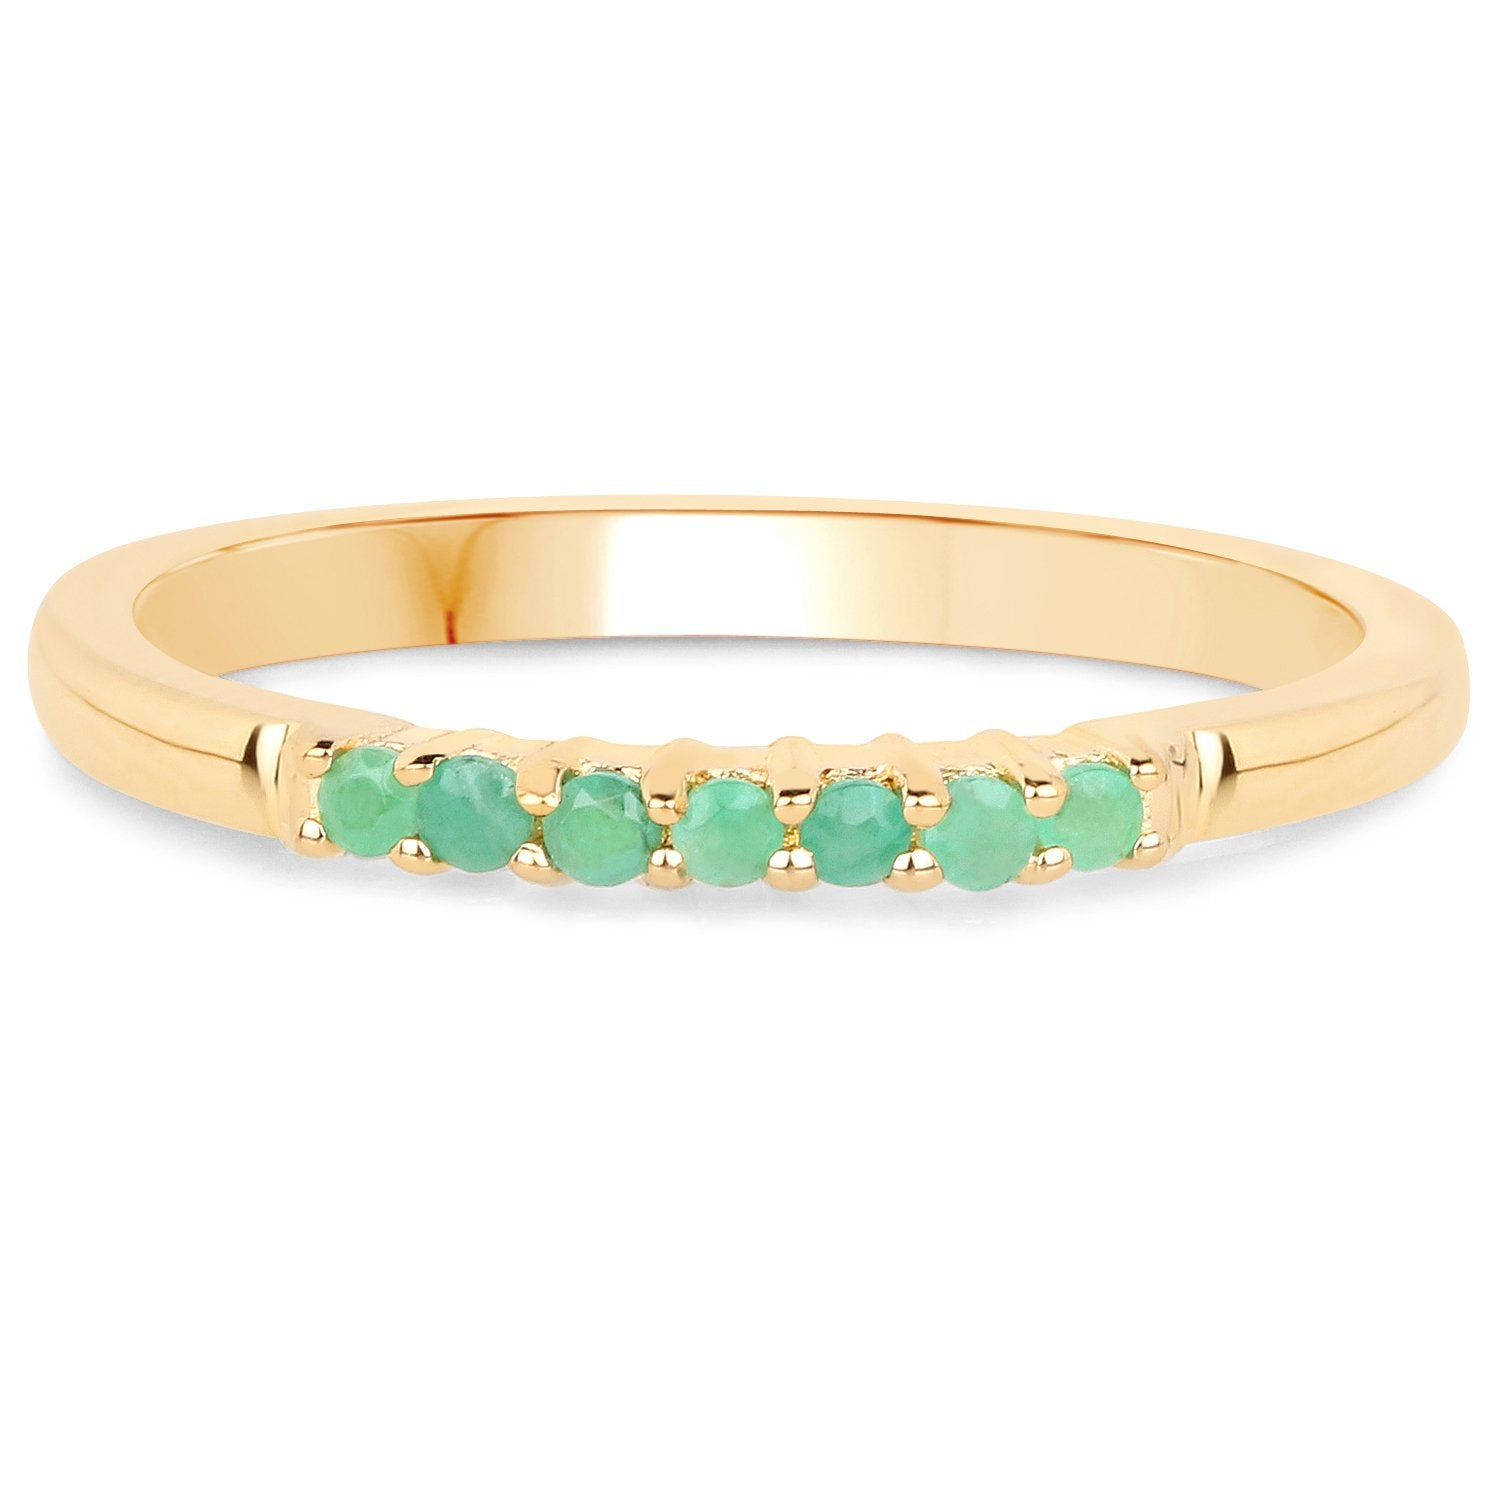 LoveHuang 0.11 Carats Genuine Emerald Stacking Ring Solid .925 Sterling Silver With 18KT Yellow Gold Plating